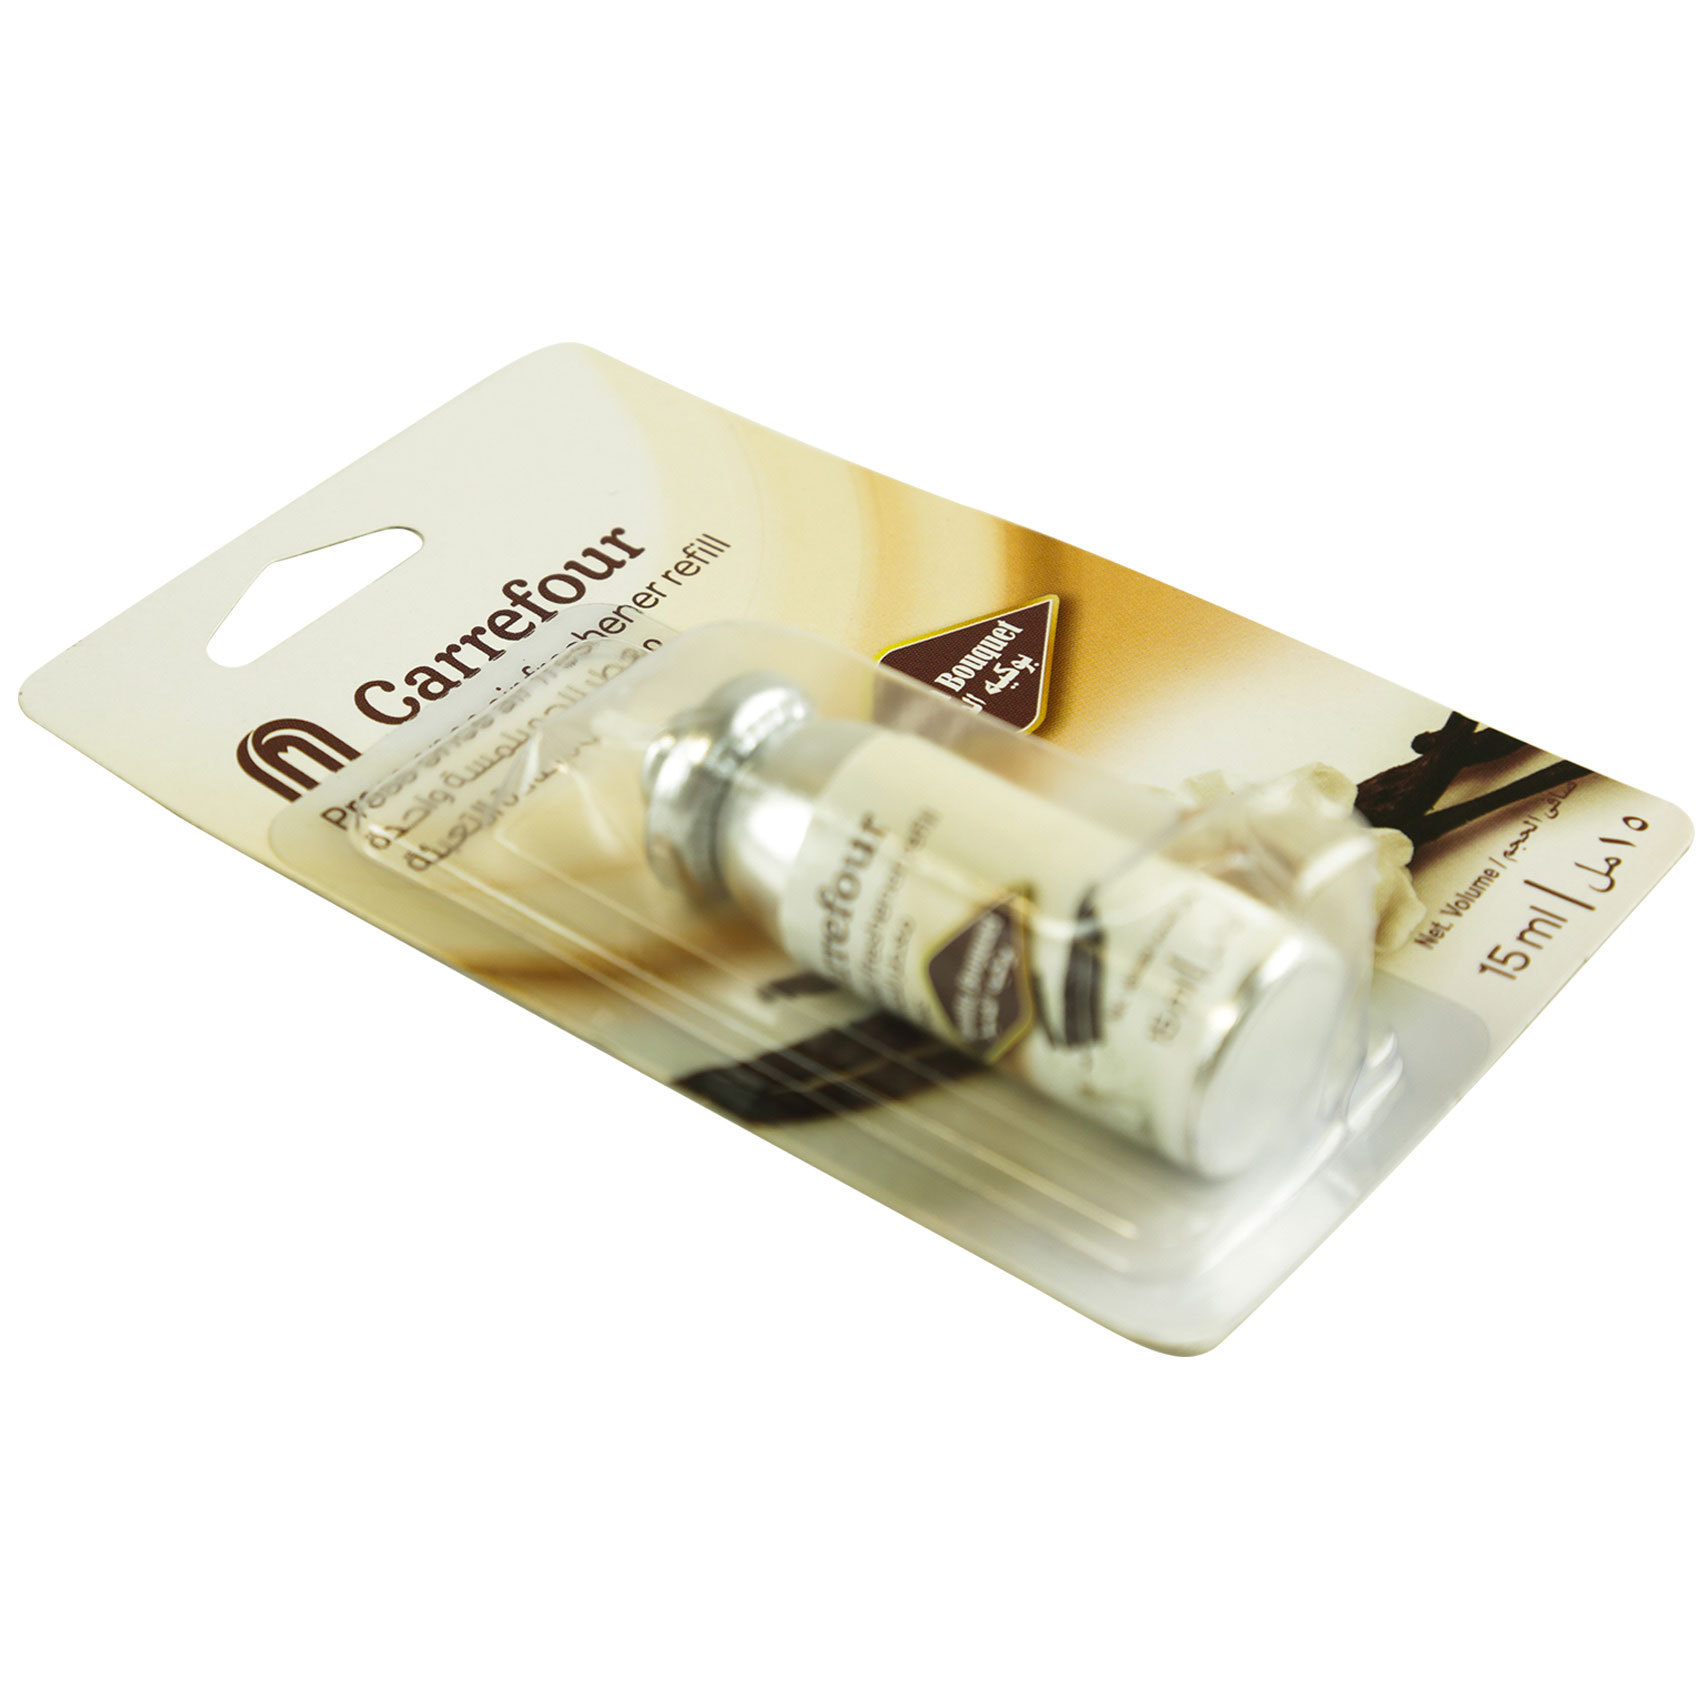 CRF PRESS ONCE VAN/BOUQ REFILL 15ML